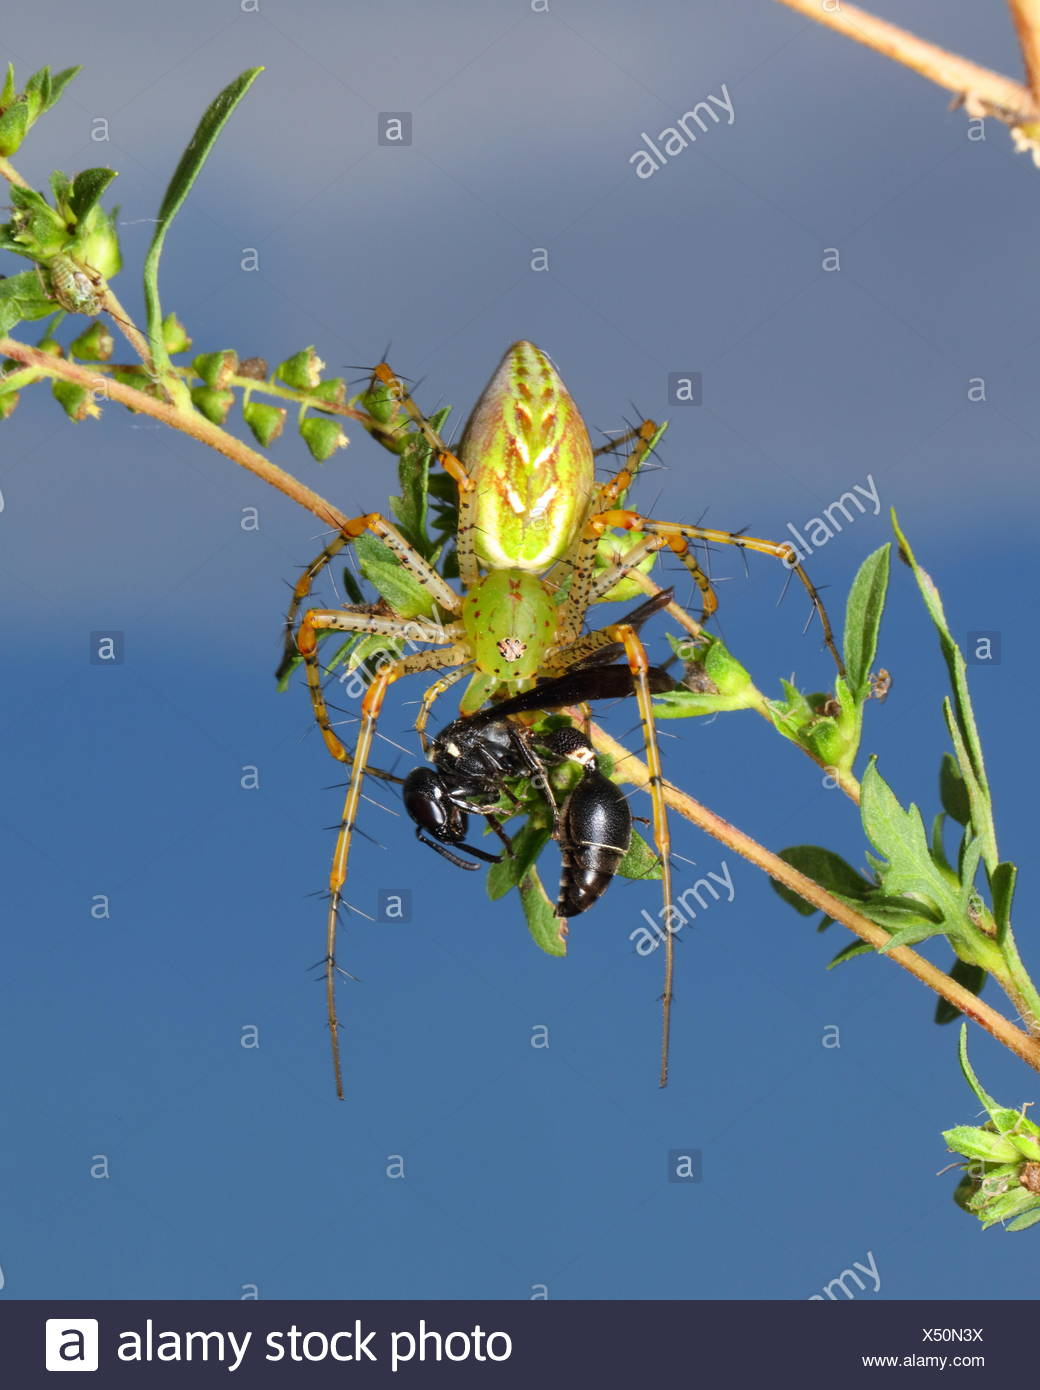 A green lynx spider, Peucetia viridans, preying on a wasp. Stock Photo